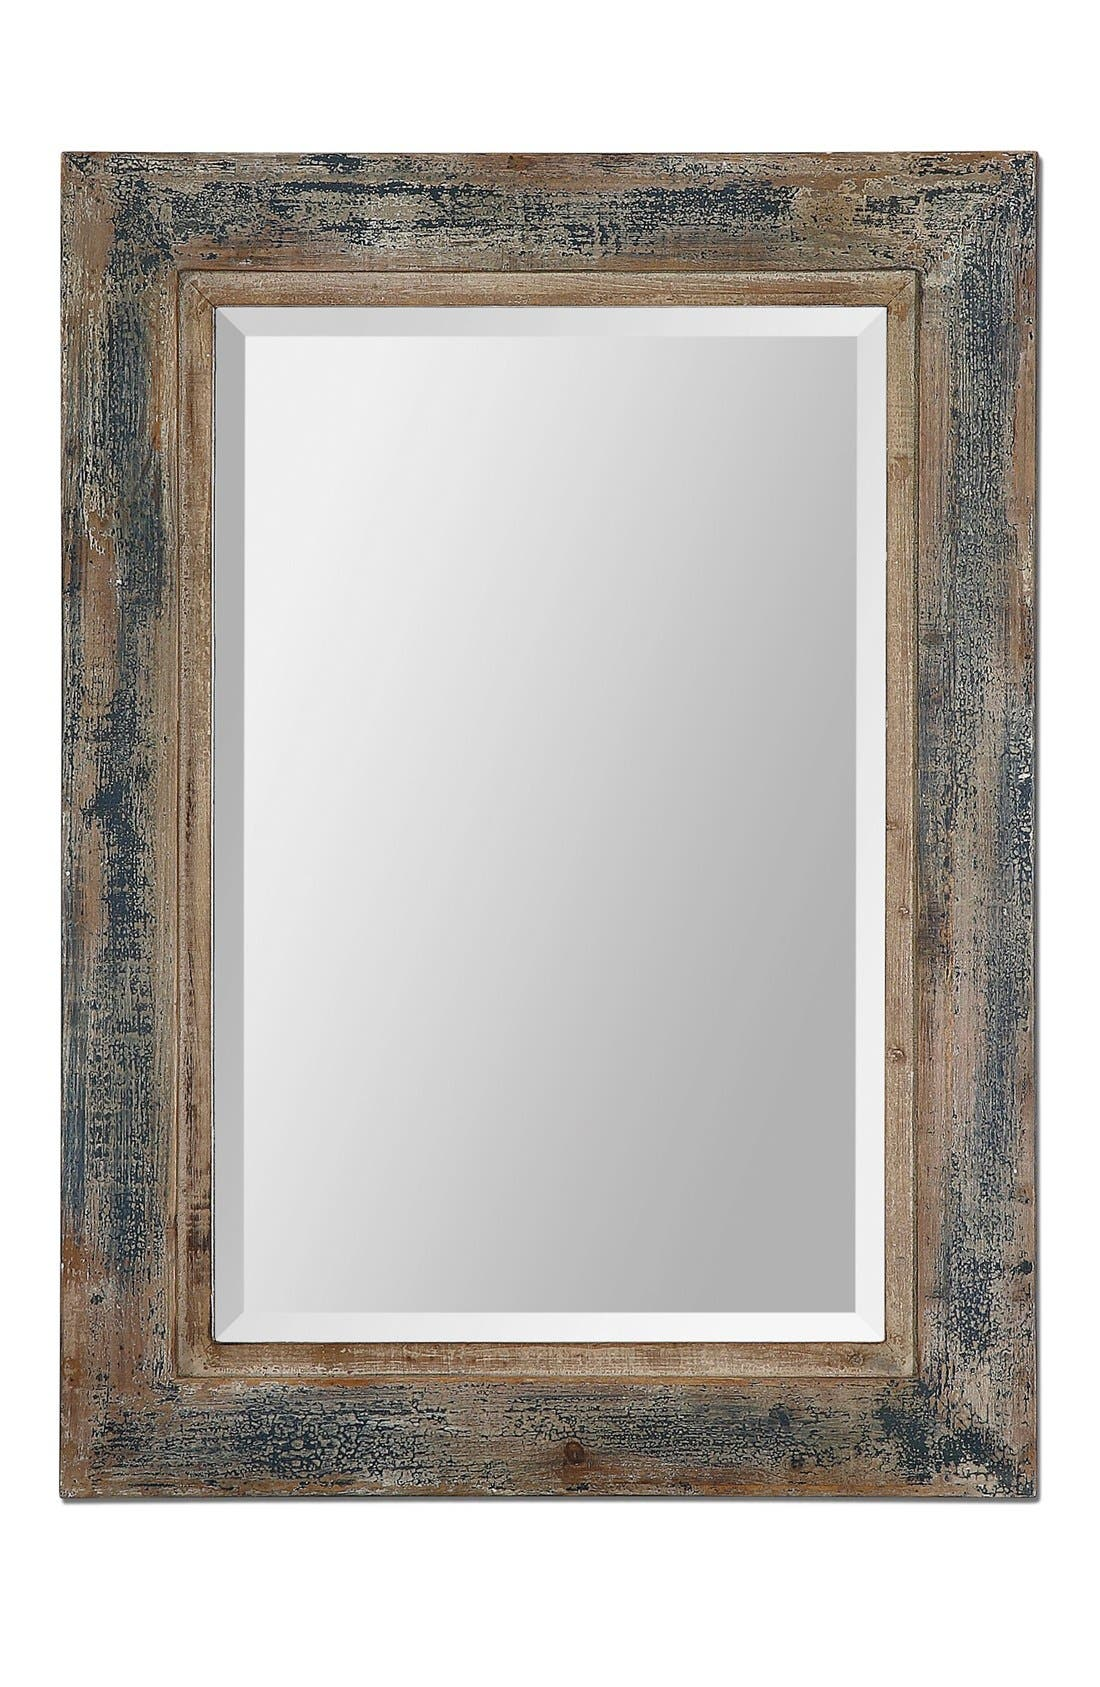 Alternate Image 1 Selected - Uttermost 'Bozeman' Distressed Wooden Mirror